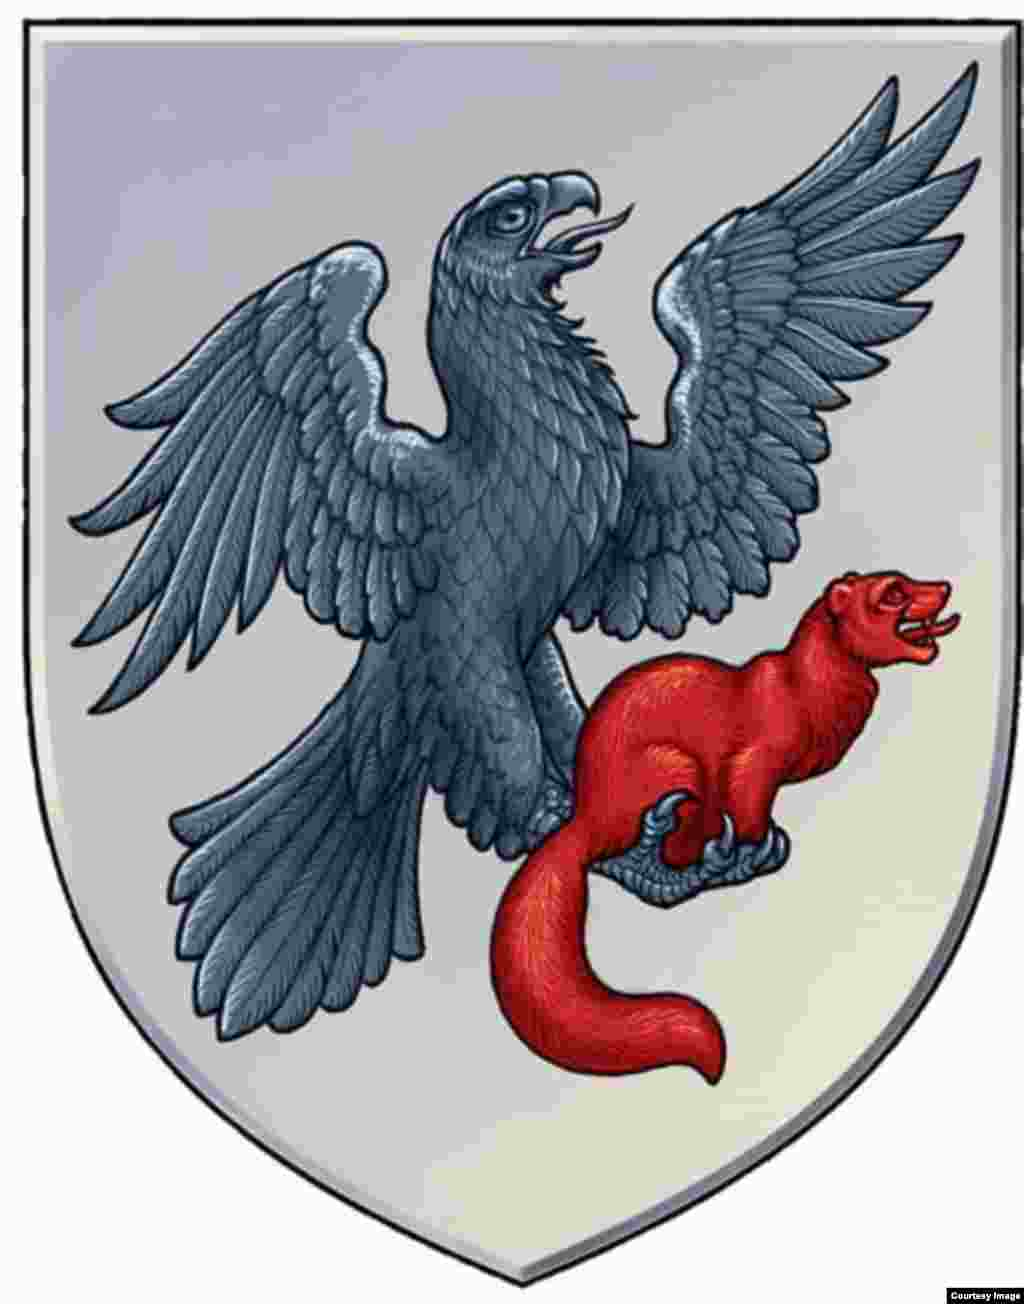 The flag of Yakutsk is kinda lame, but its coat of arms is thankfully different, showing a fierce eagle holding a proud sable. That's one of the more historical ones, as it was first approved by Catherine II in 1790.